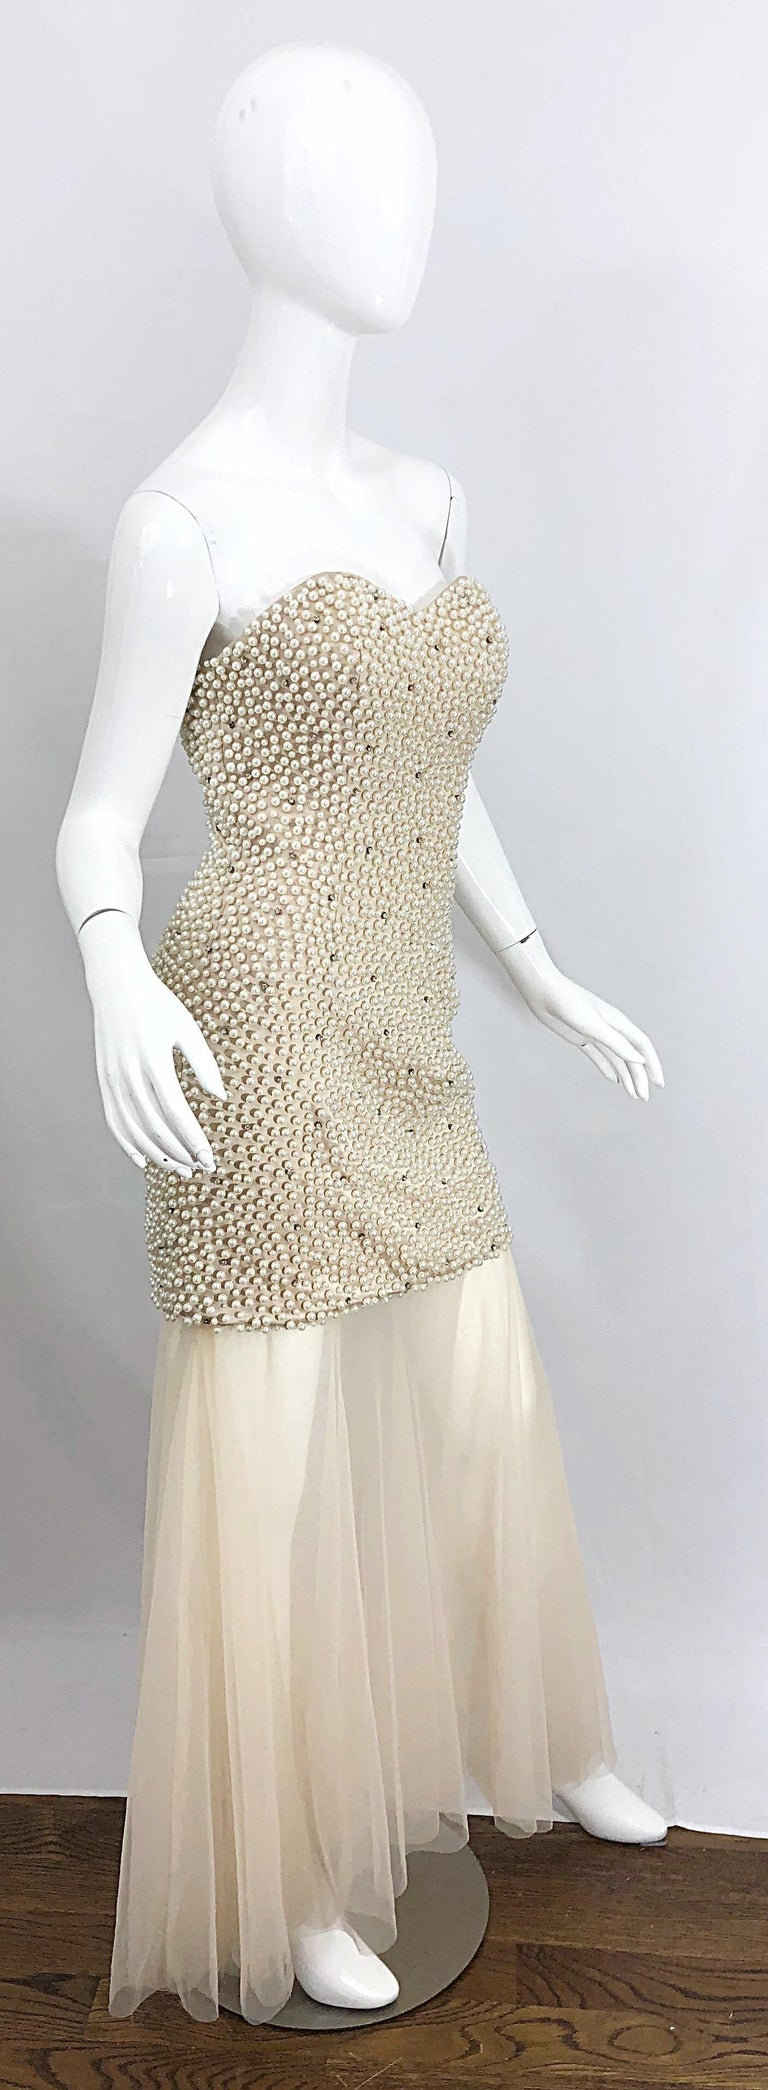 Phenomenal 1990s Couture Pearl + Rhinestone Encrusted Strapless Beige 90s Gown For Sale 7